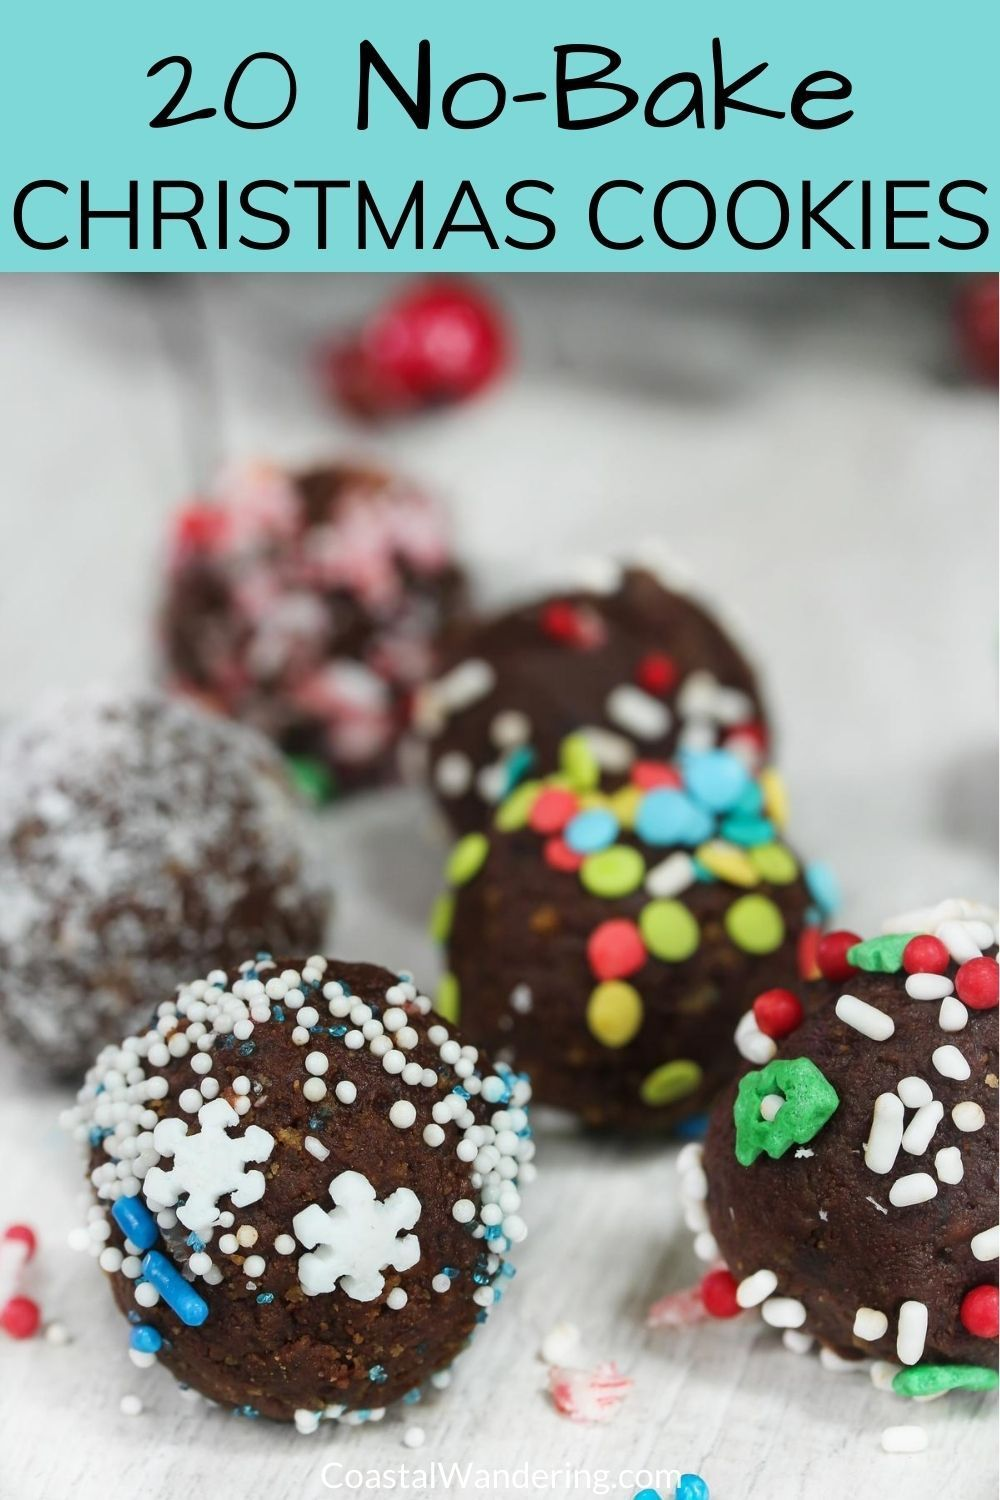 20 Easy No-Bake Christmas Cookies -   19 christmas cookies recipes easy no bake ideas